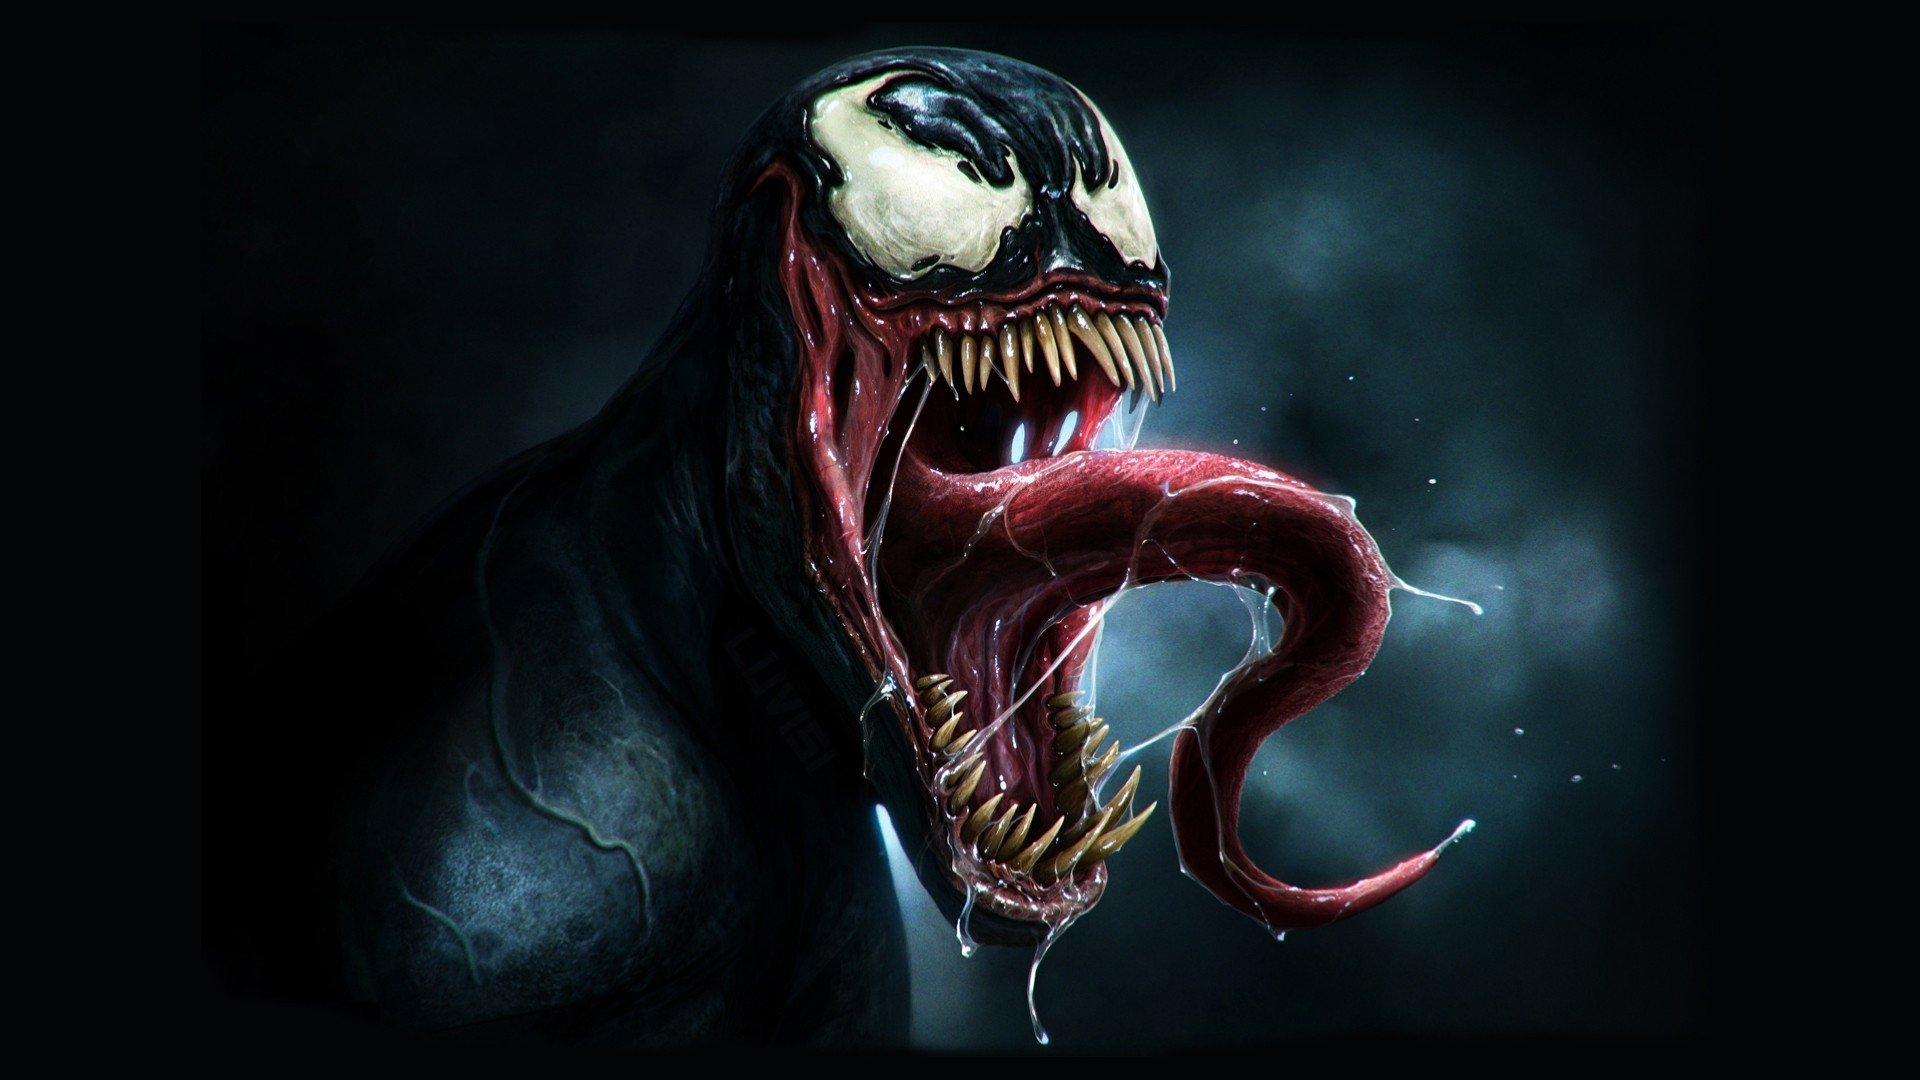 https://cinemaplanet.pt/wp-content/uploads/2017/11/venom.jpg